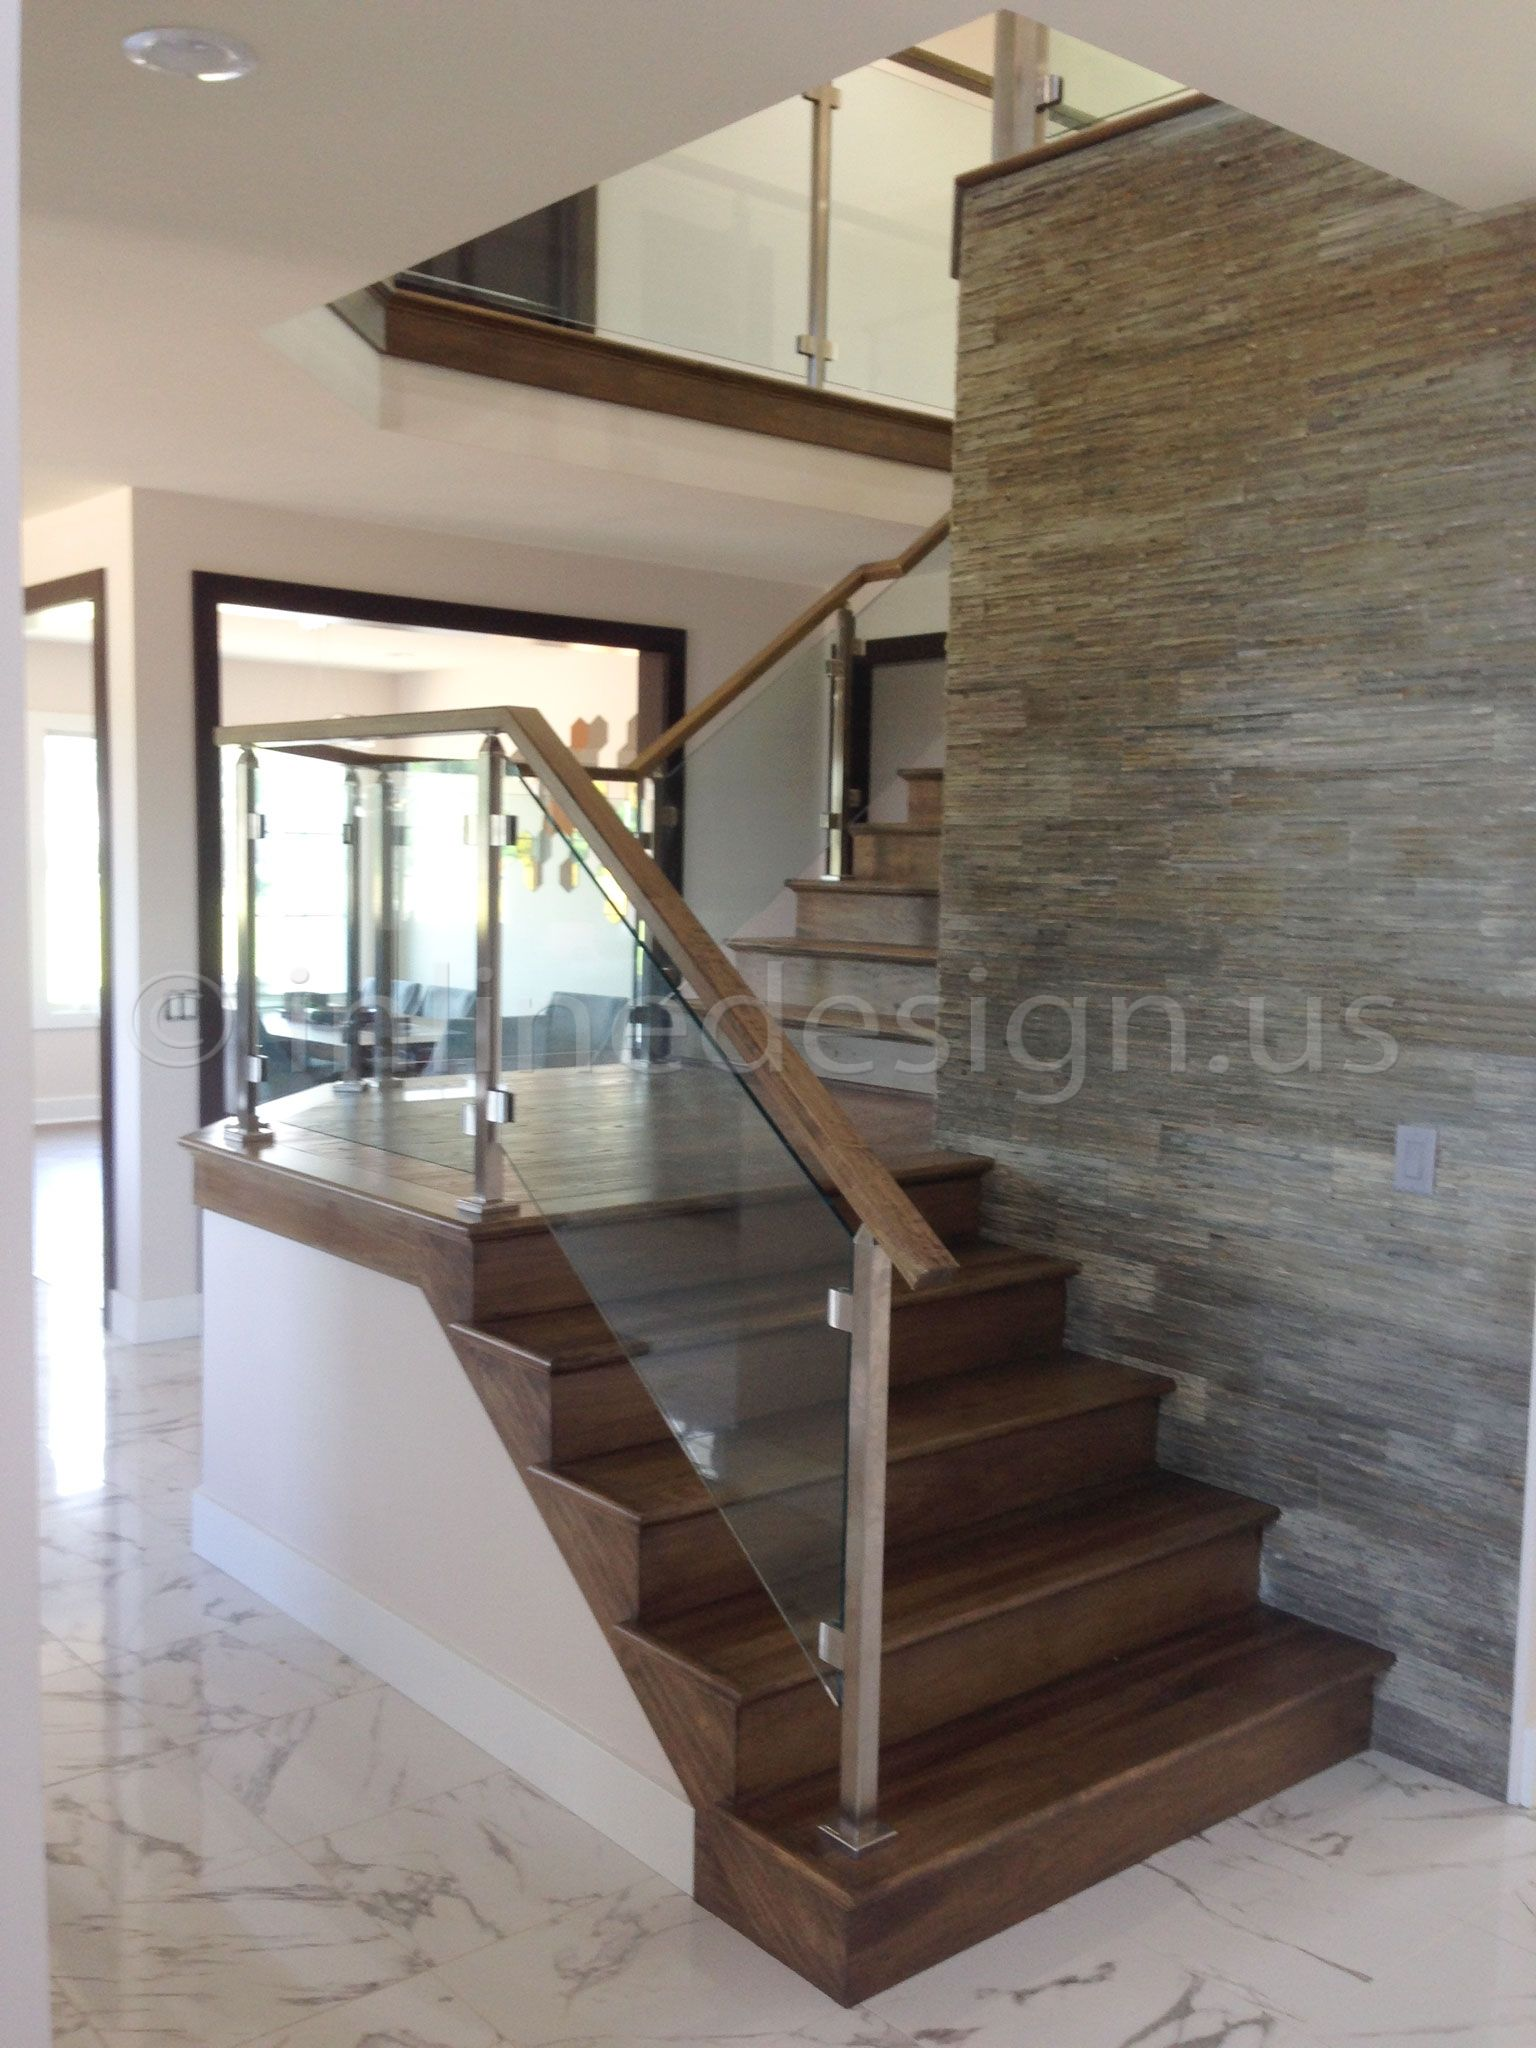 install home monmouth step interior systems spiral of image blues railings railing